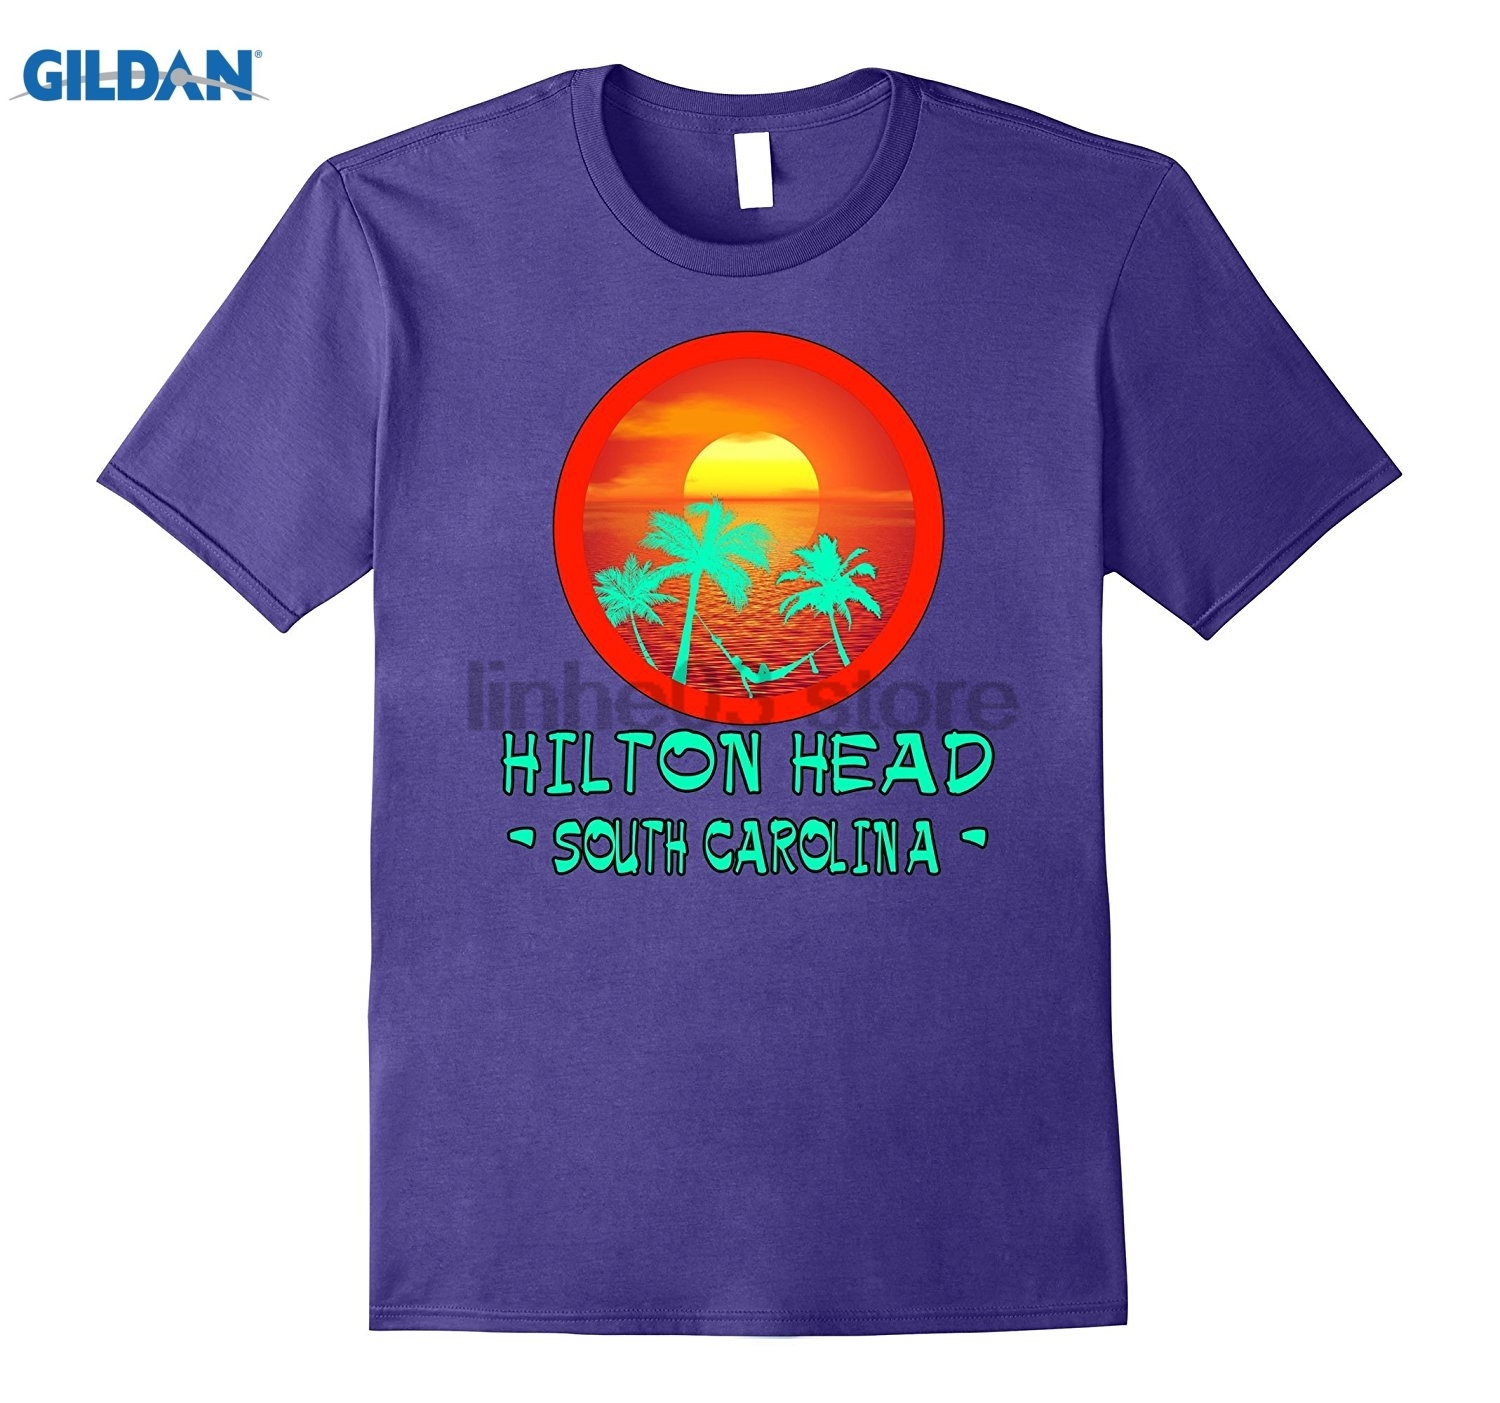 GILDAN HILTON HEAD SOUTH CAROLINA TROPICAL ISLAND VACATION GIFT TEE Dress female T-shirt ...